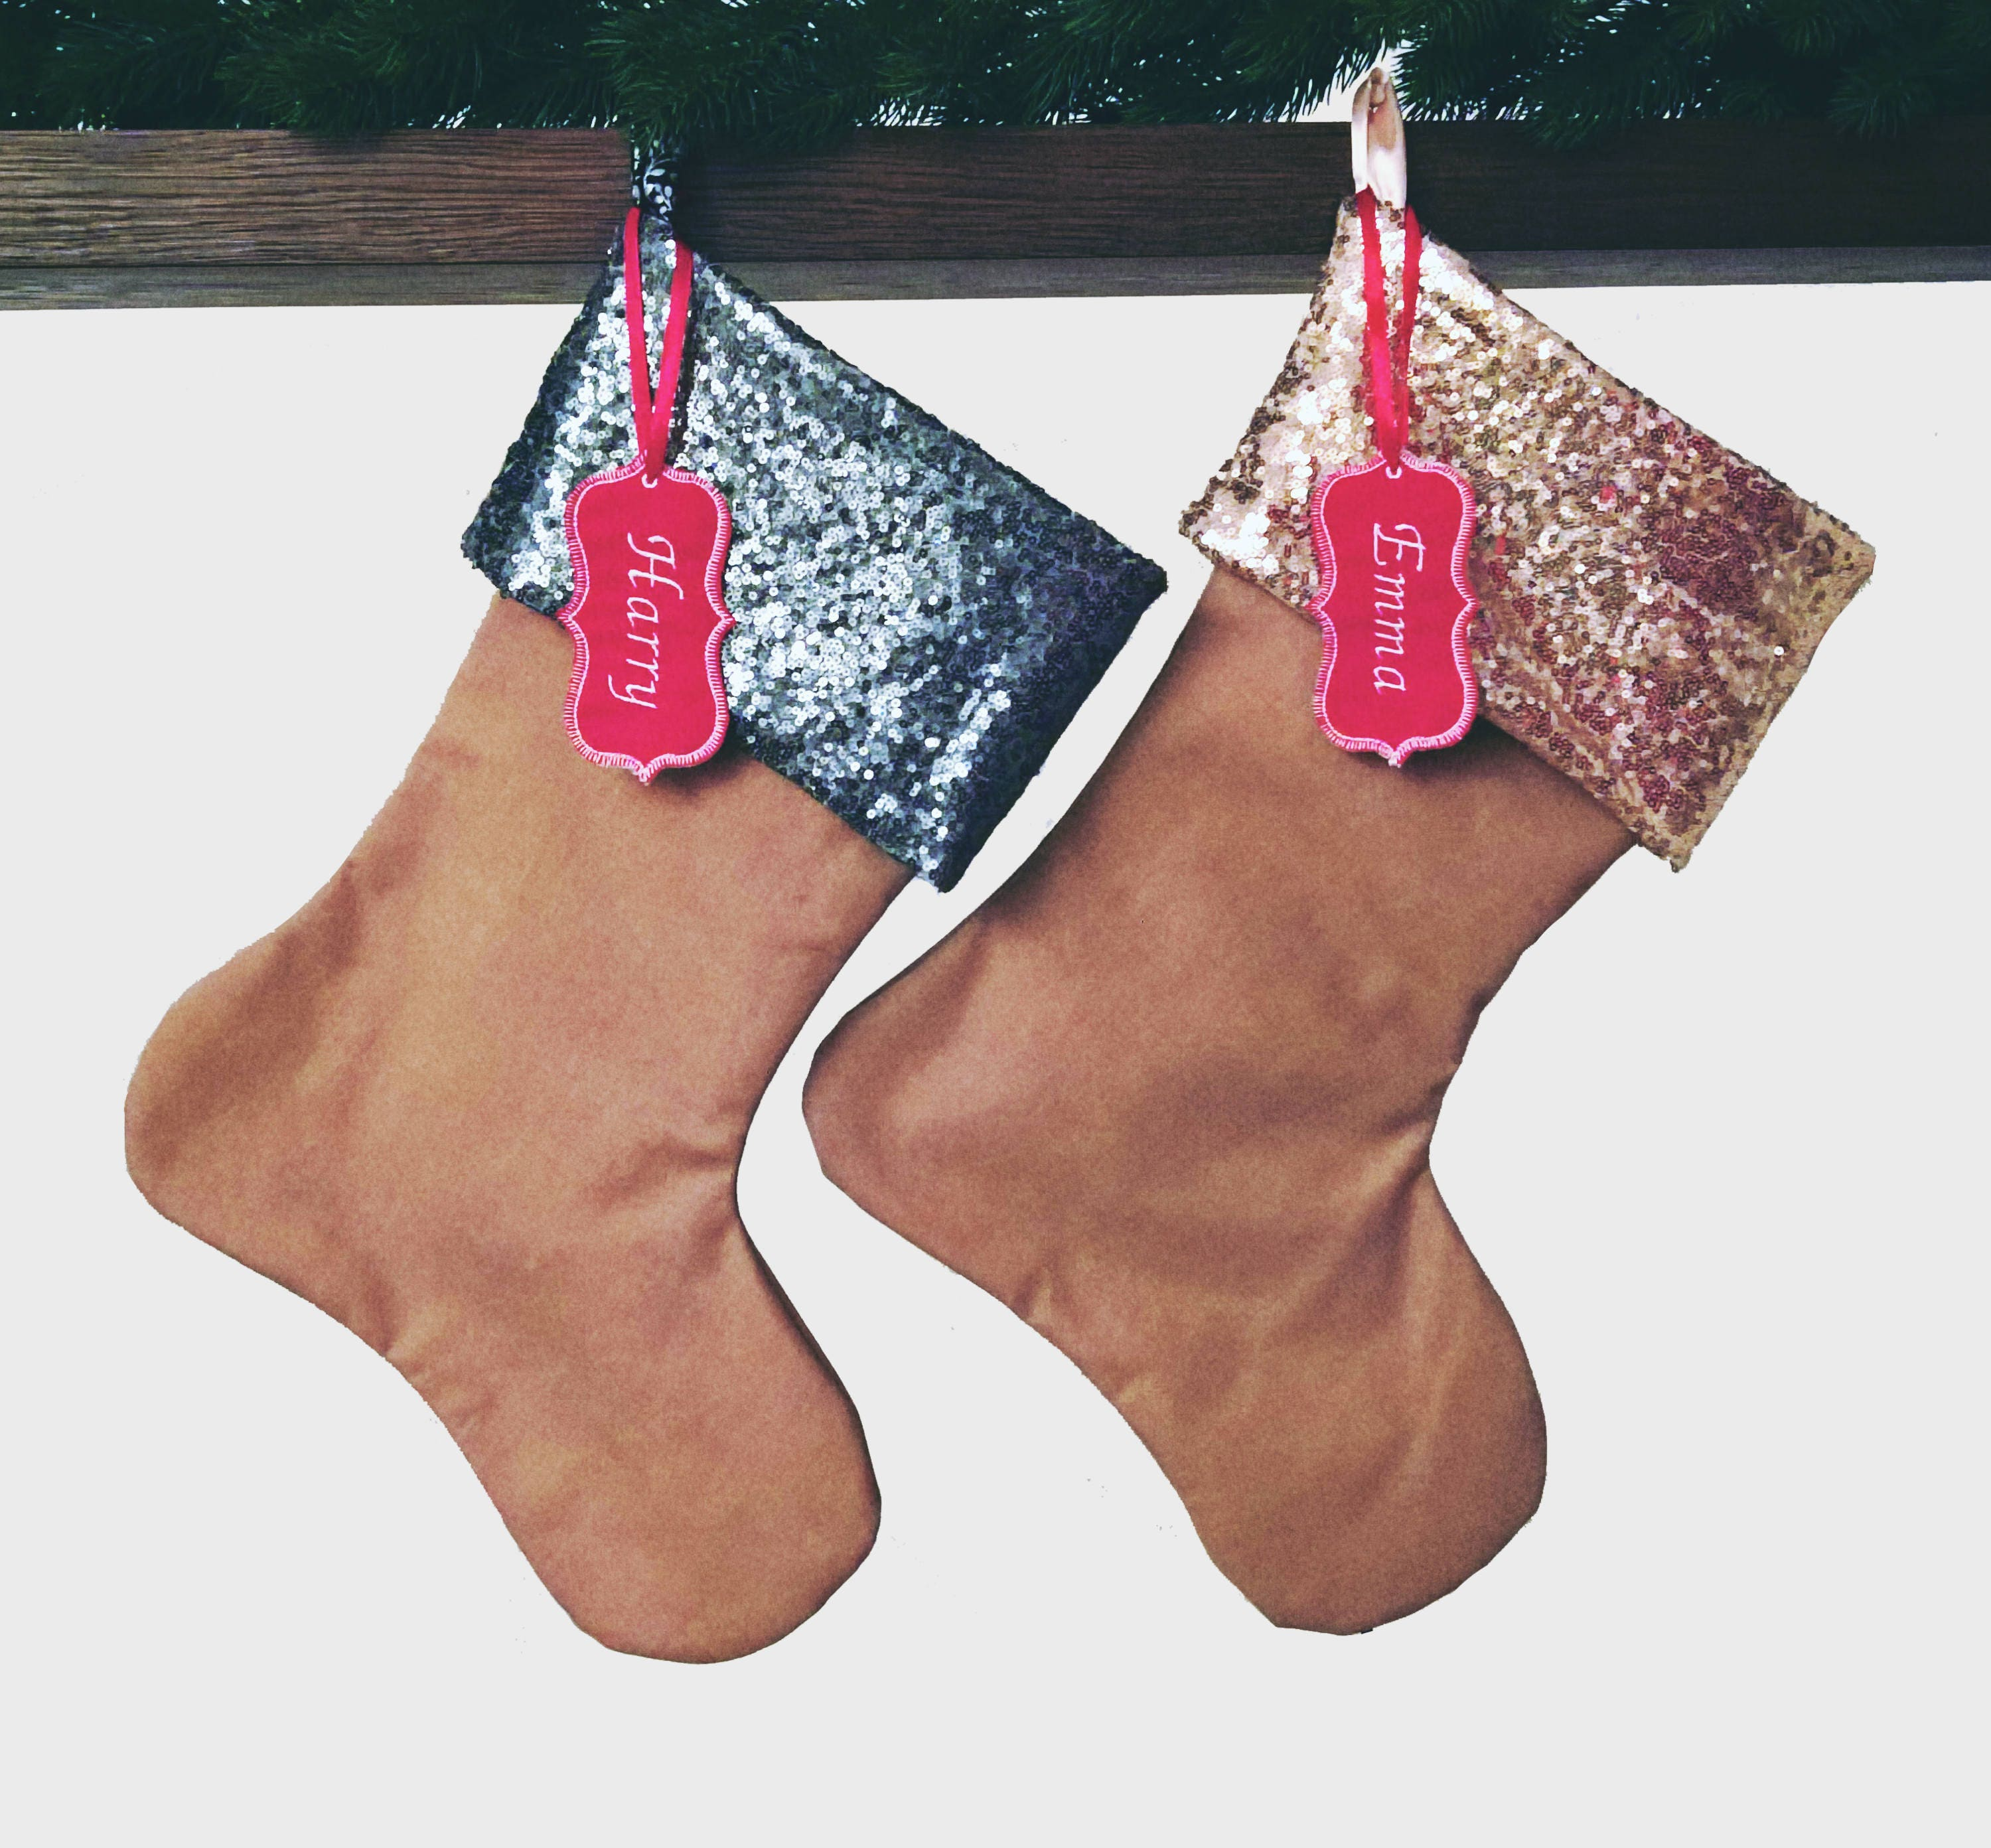 set of 4 four large sequin cuff handmade christmas stocking fireplace decor champagne gunmetal embroidered name tag personalized gift - Handmade Christmas Stockings